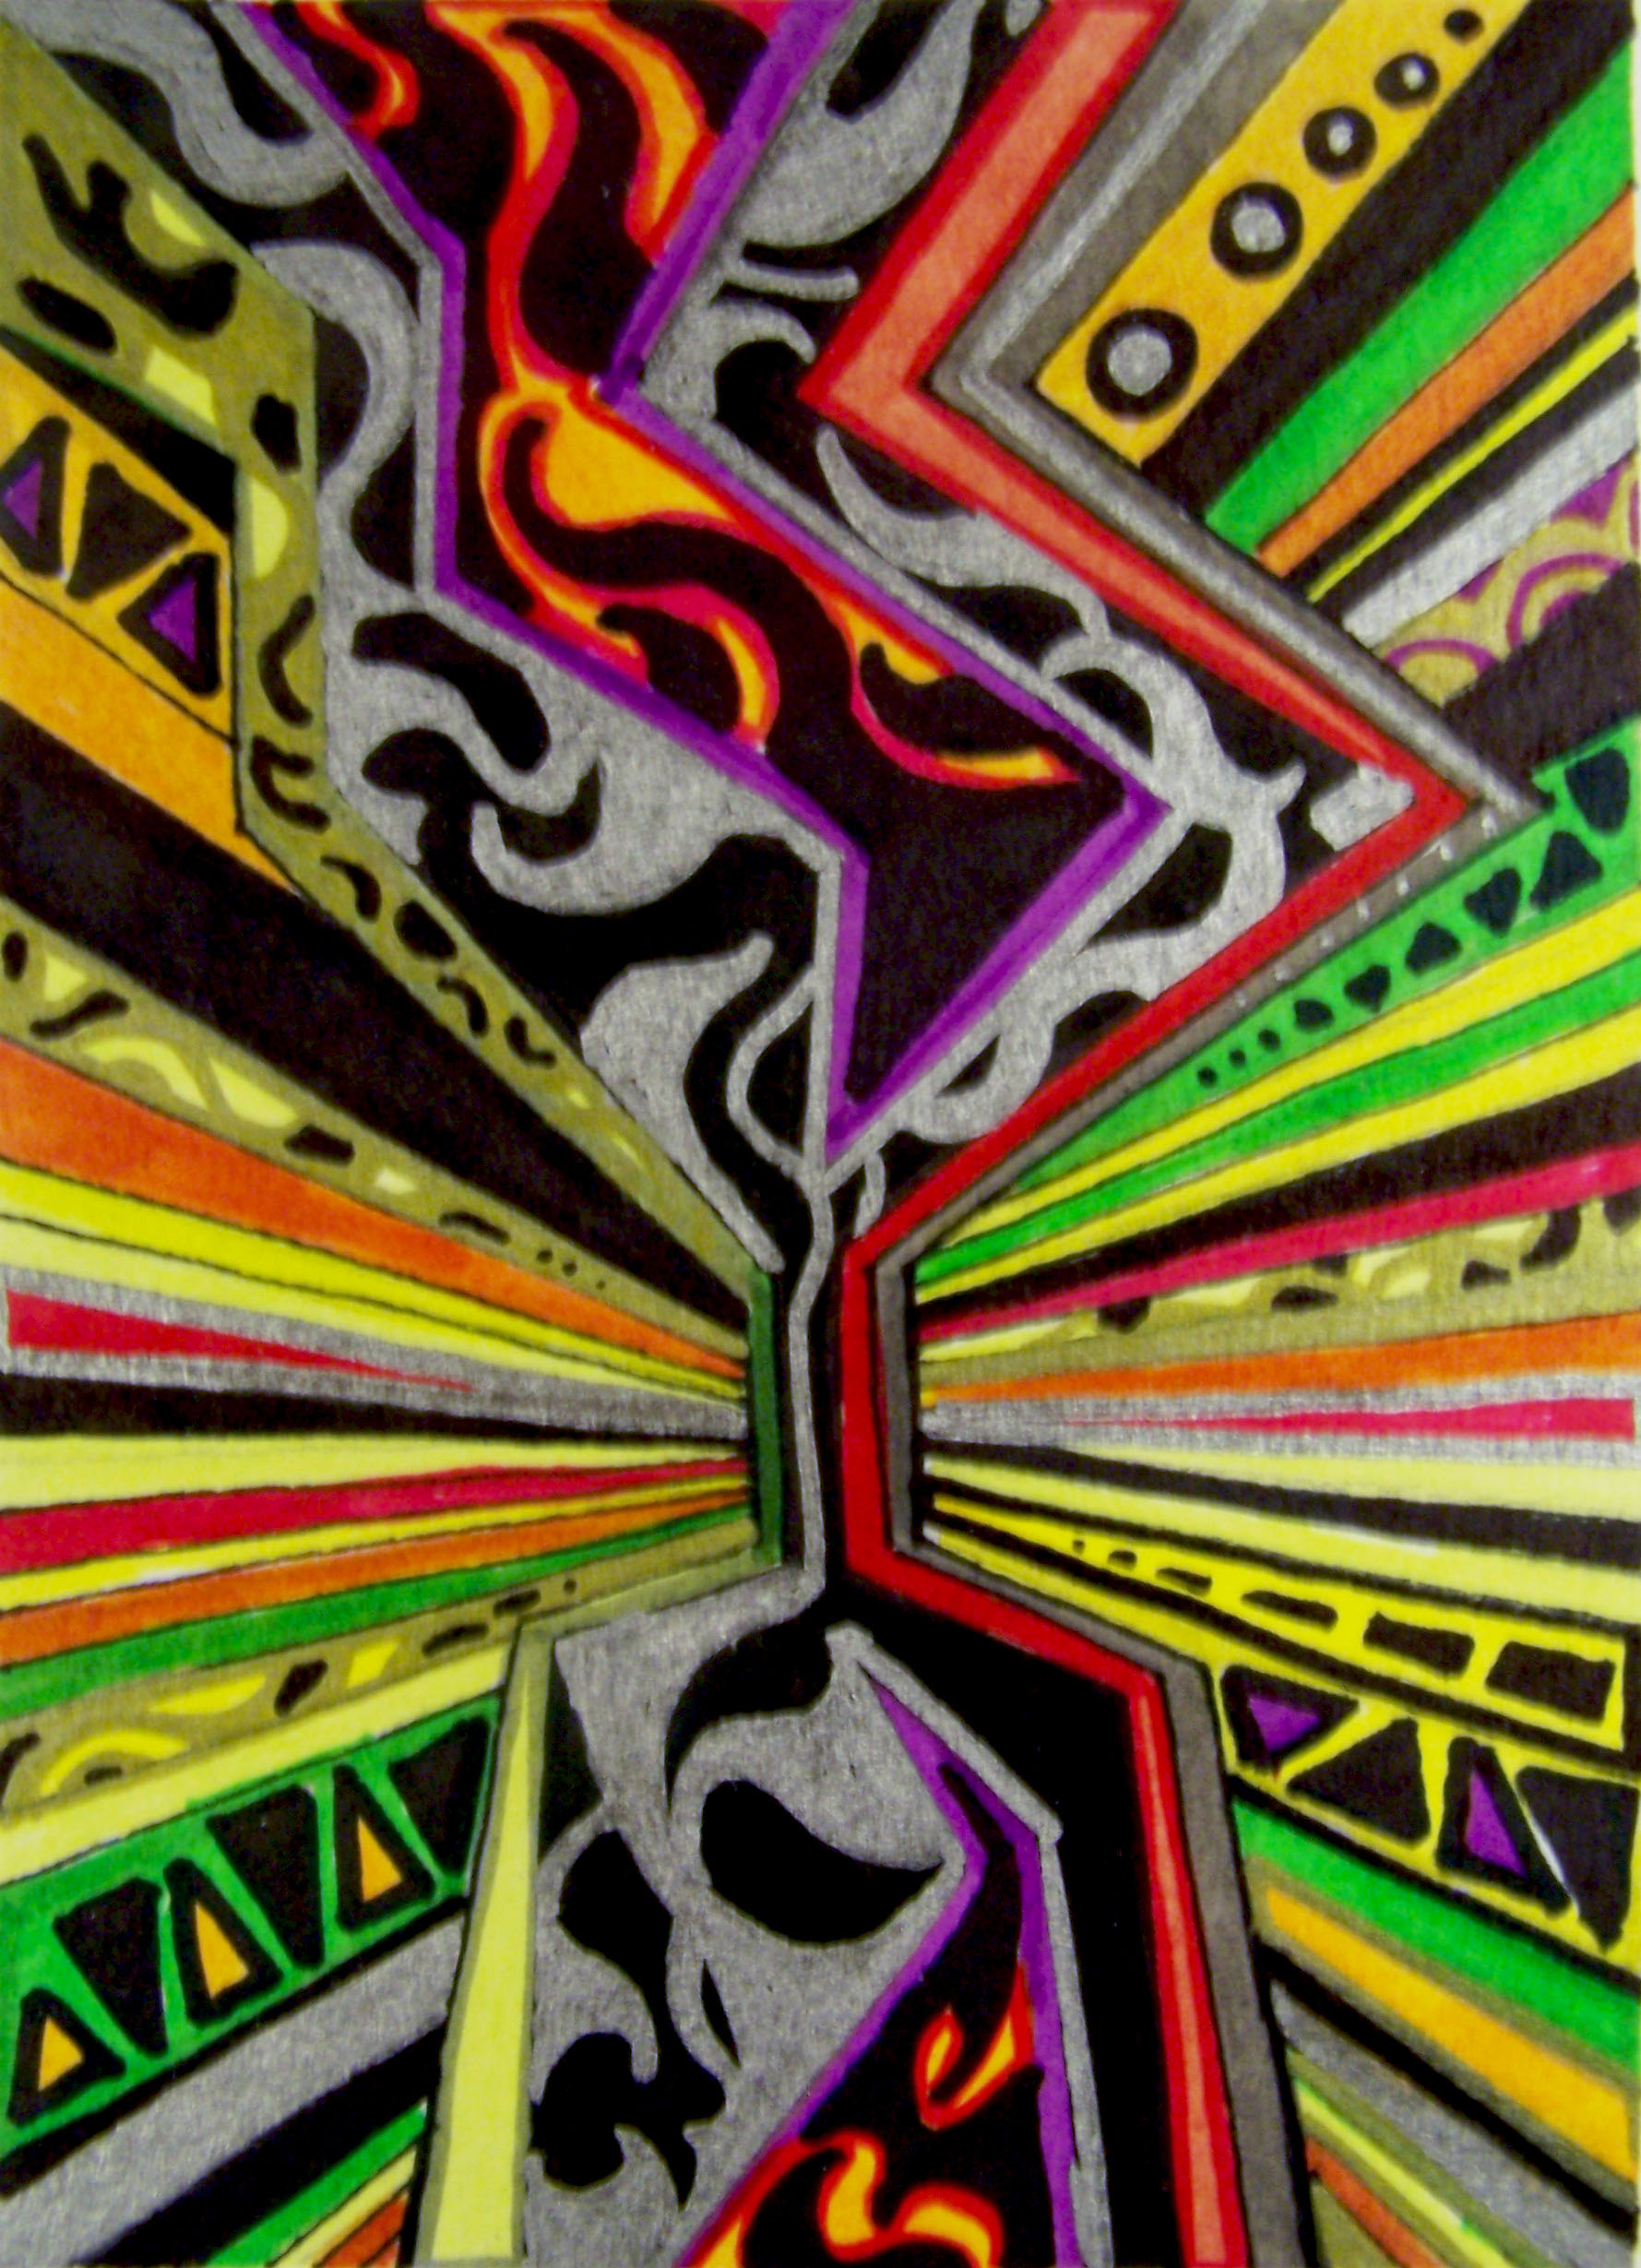 sharpie and ink on paper 2012